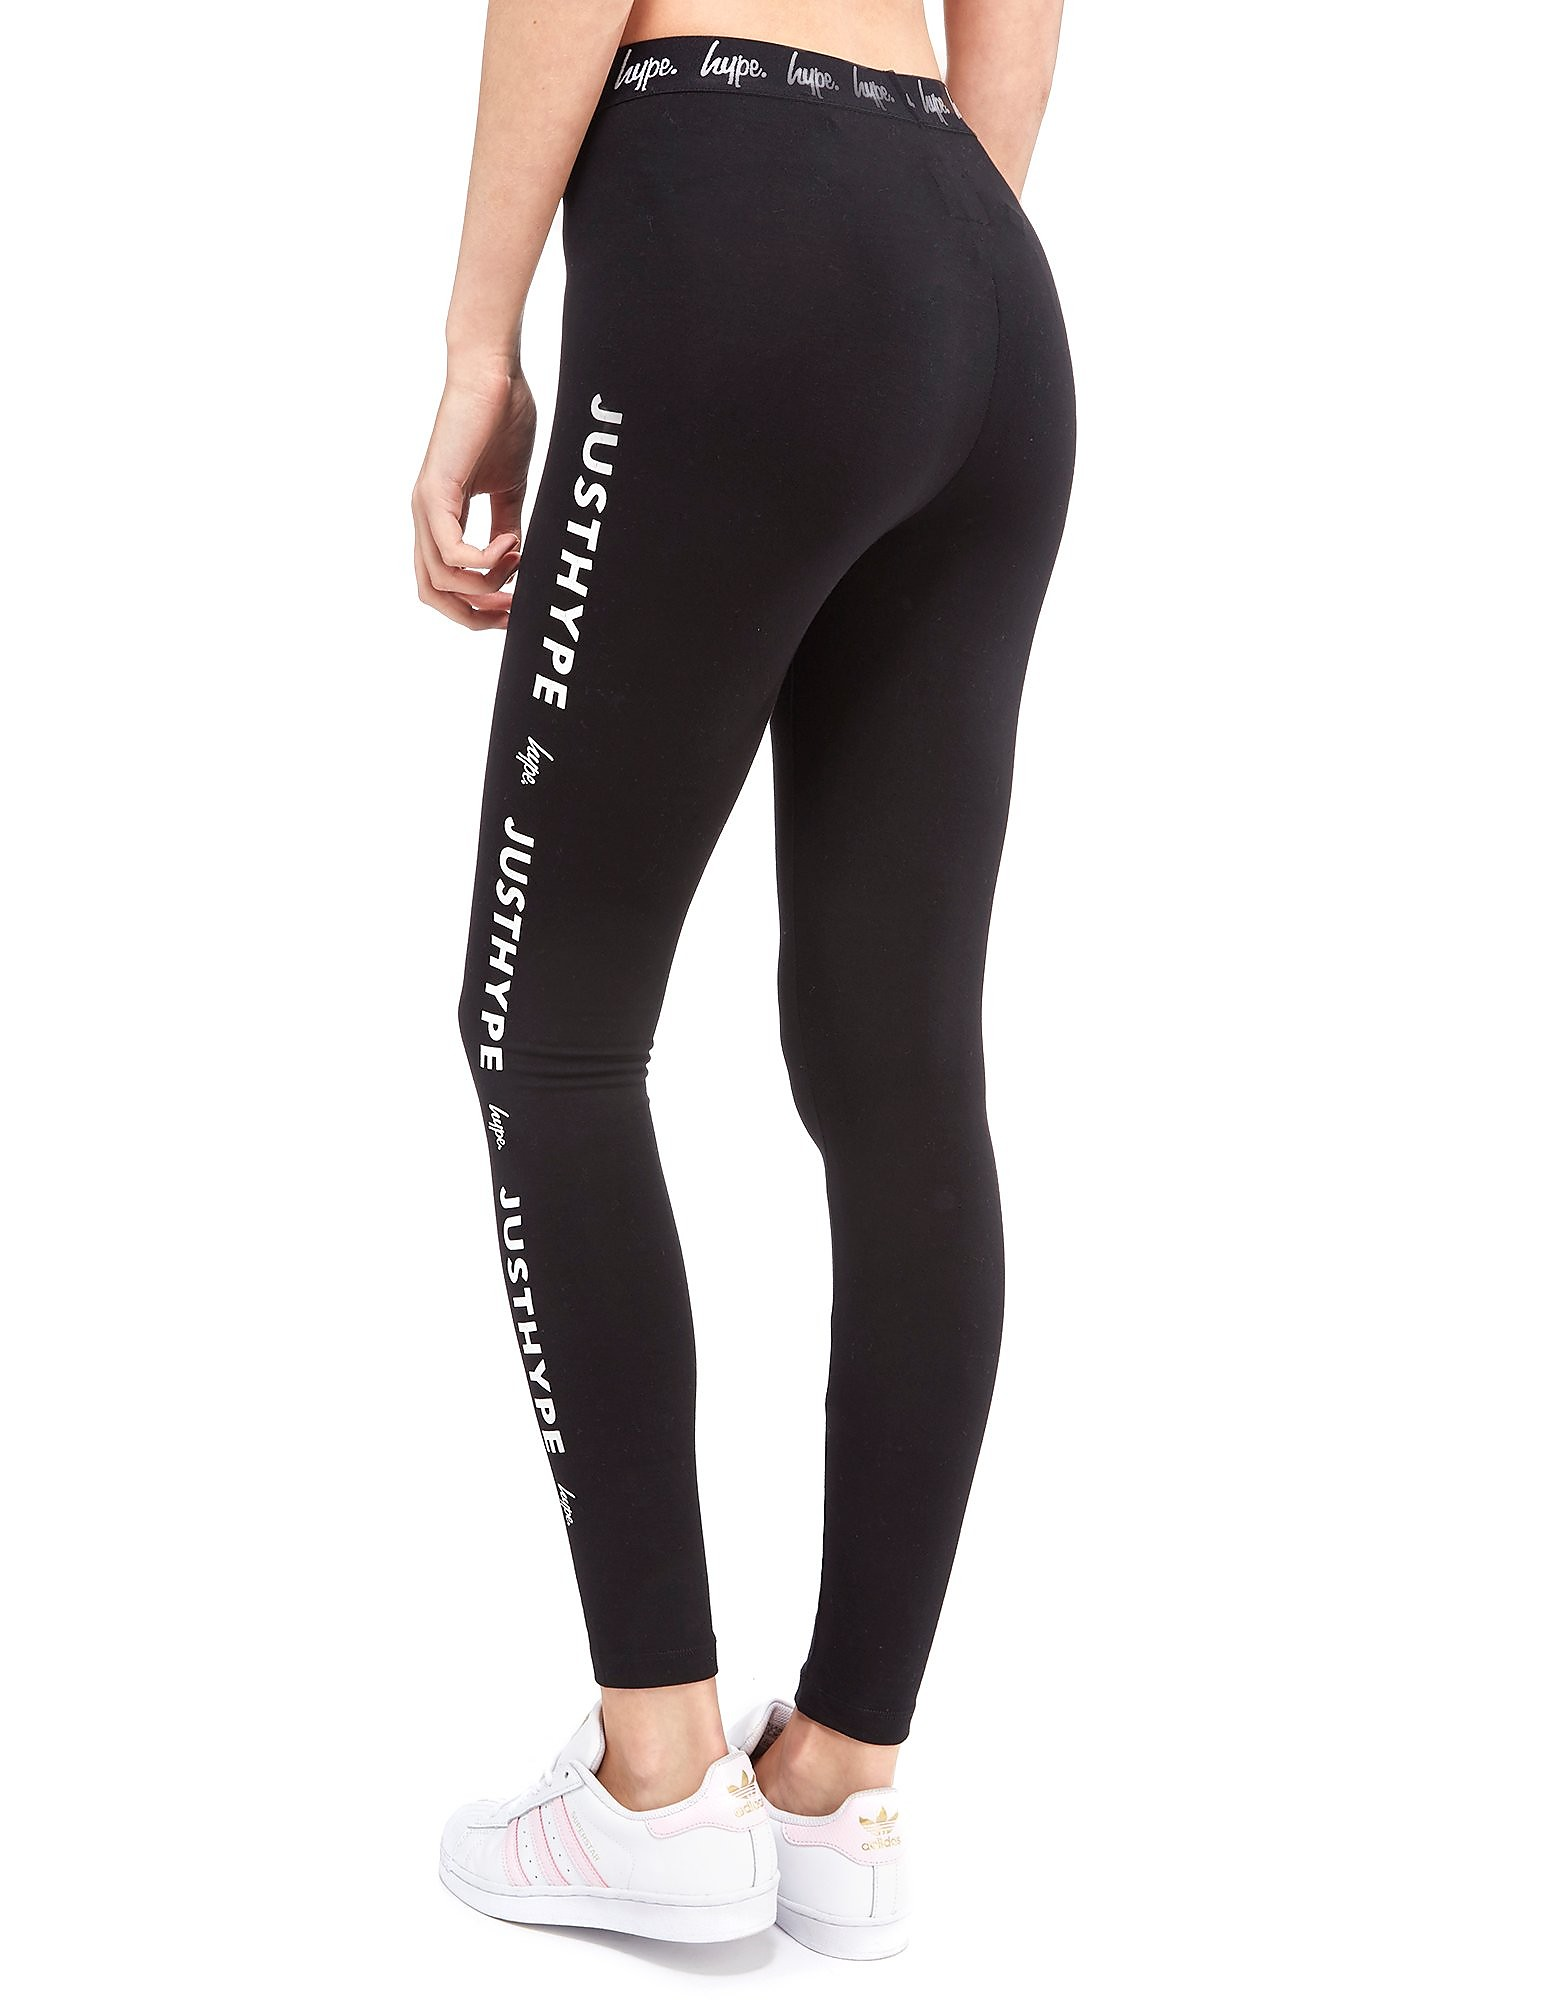 Hype Just Hype Leggings